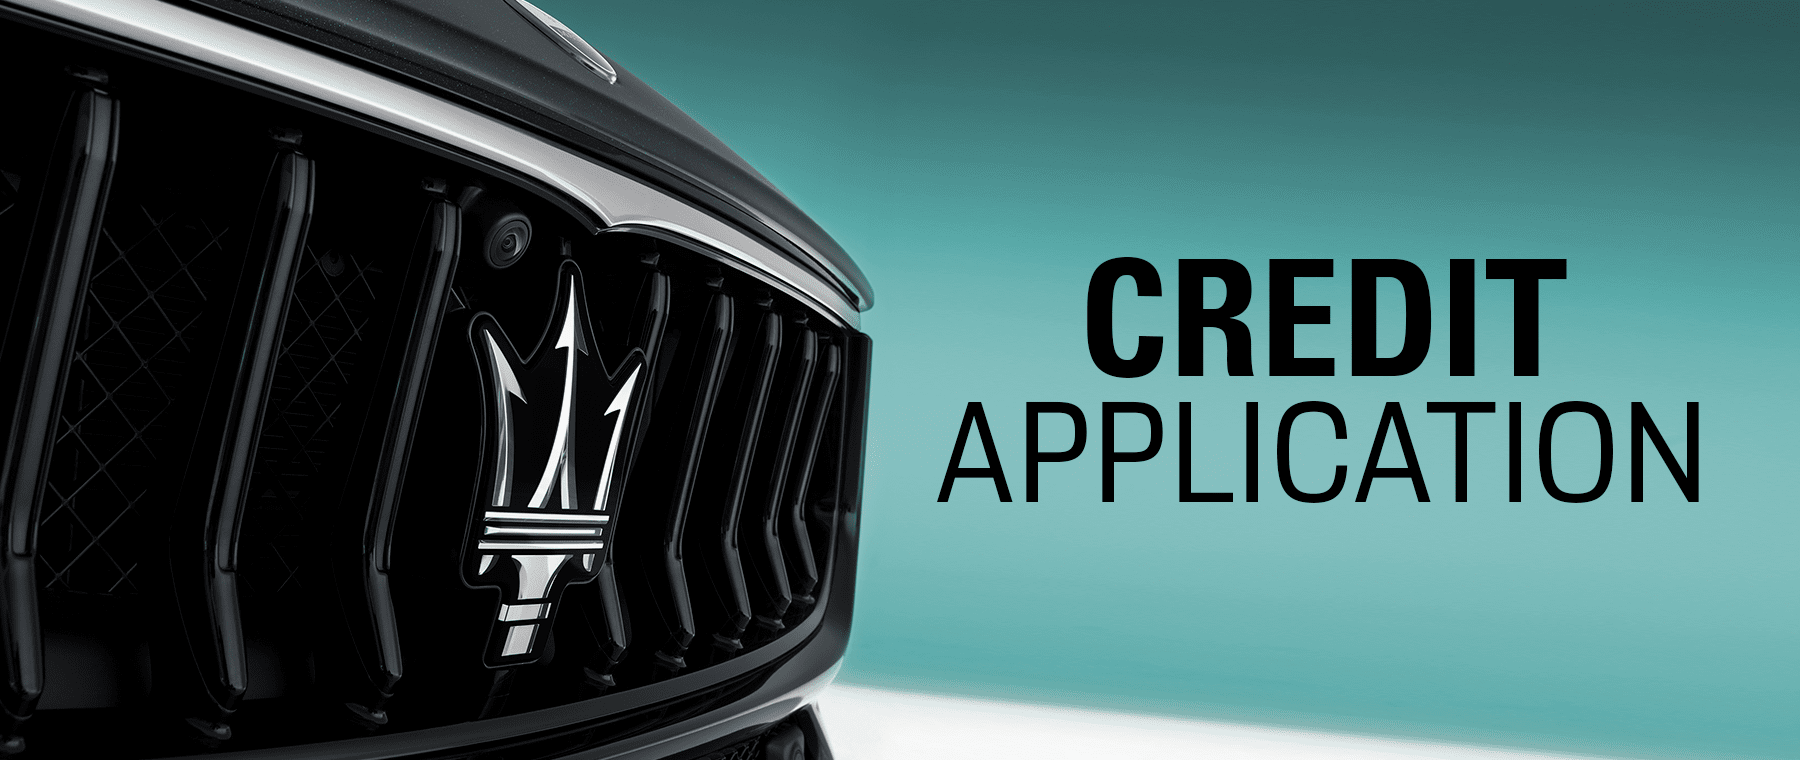 Maserati Credit Application